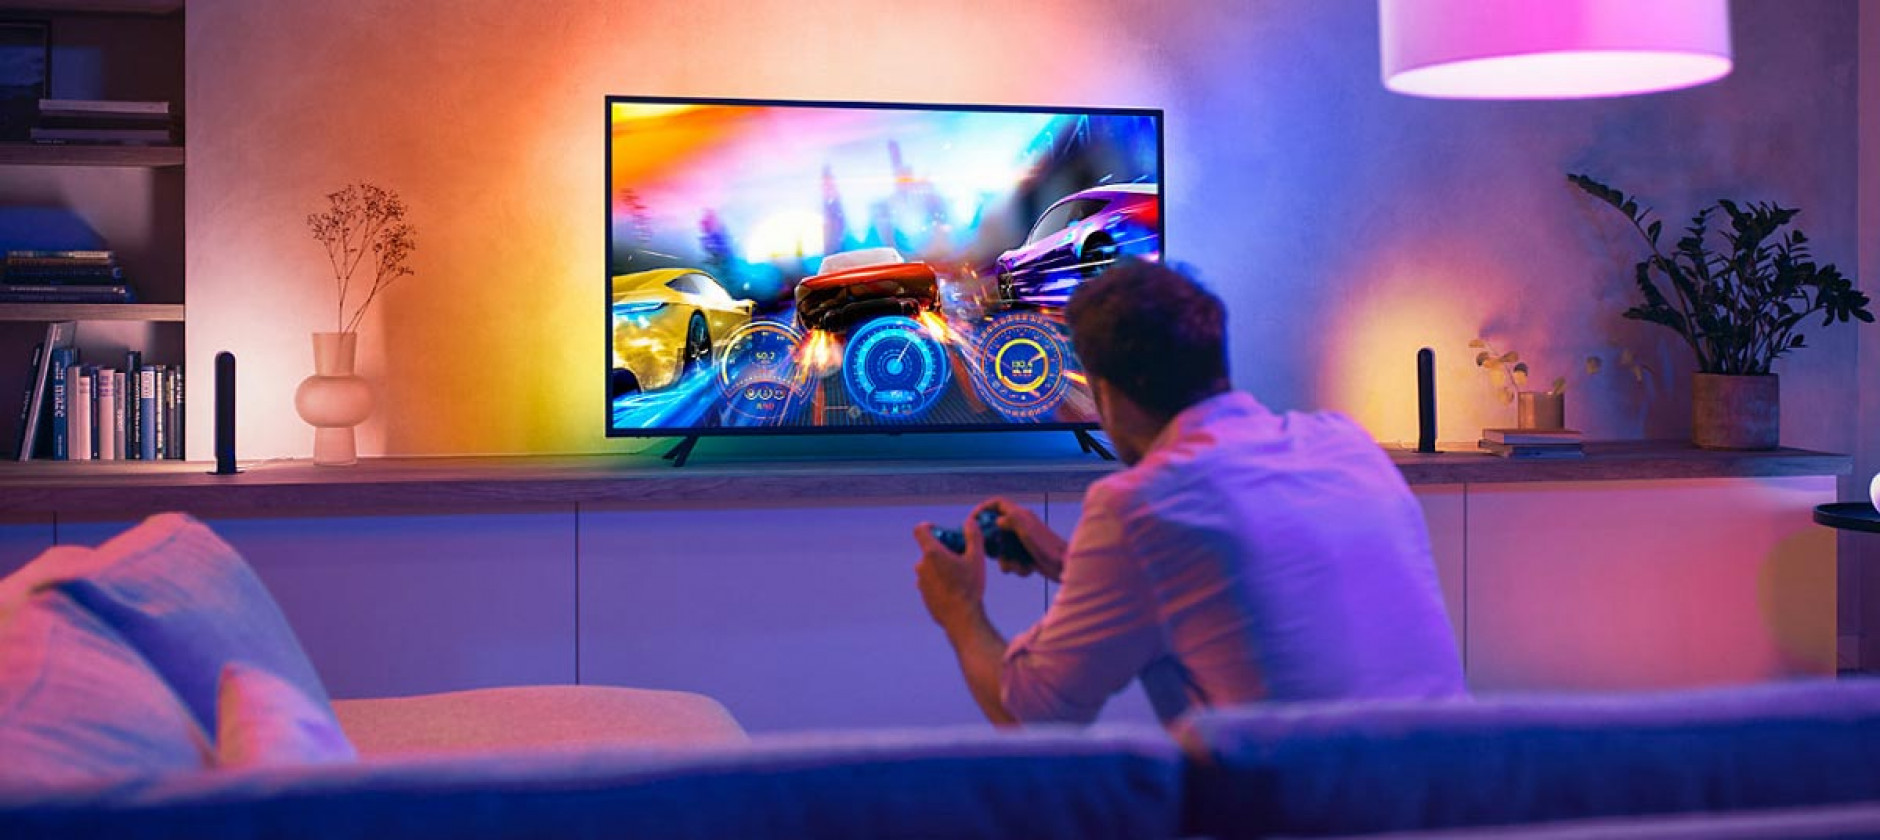 Effetto Ambilight su tutti i TV con Philips Hue Play gradient lightstrip